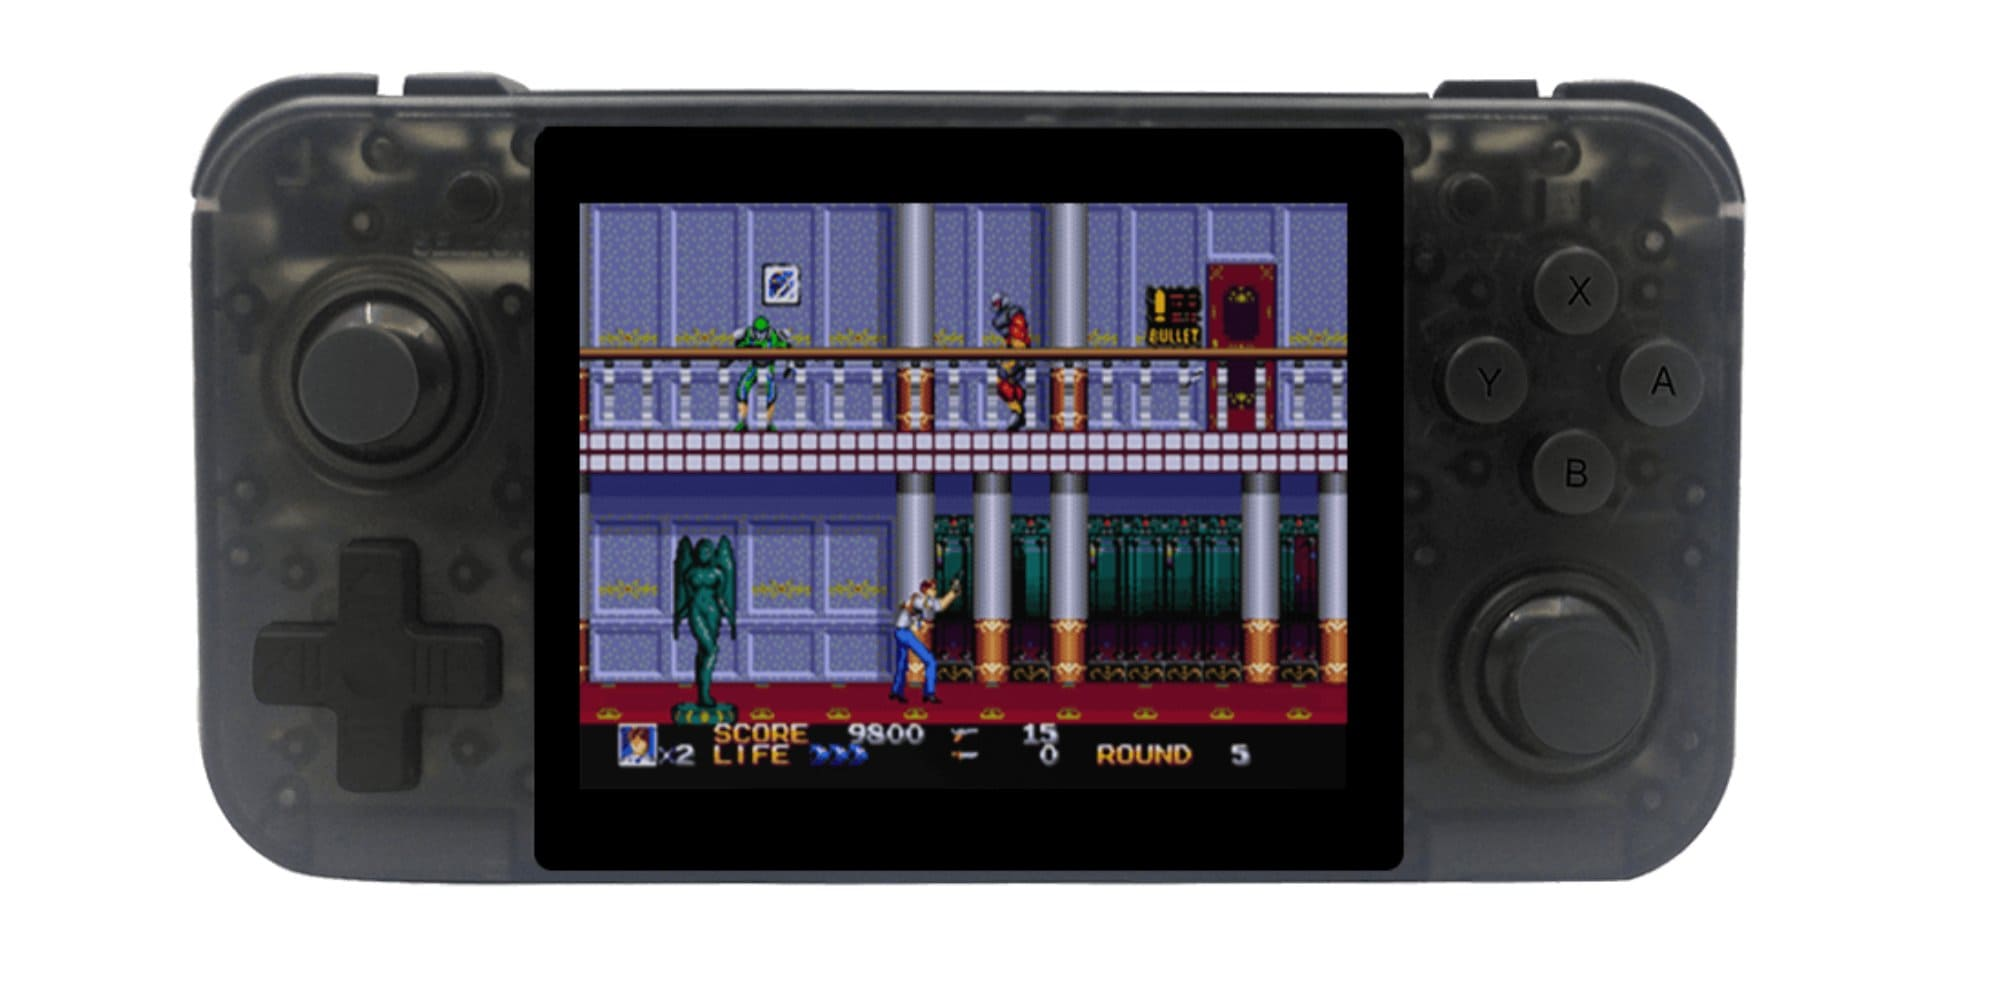 Anbernic Retrogame Rg350 Review Handheld Emulator With Game Boy Gba Snes Nes Ps1 Also Bittboy